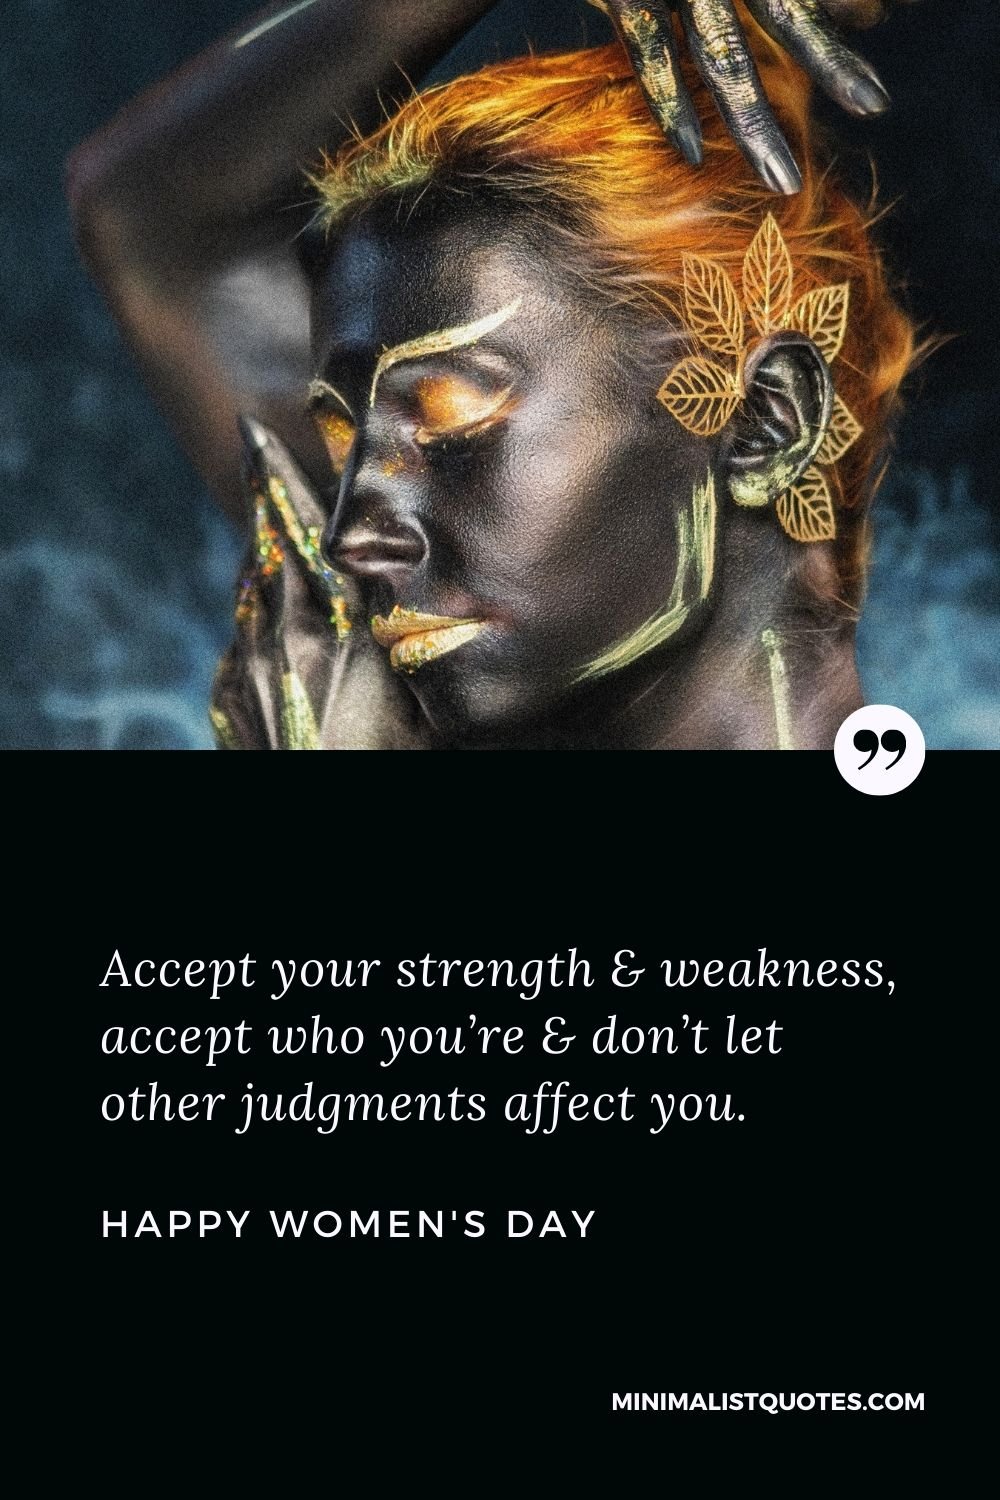 Women's Day Wish & Message With Image: Accept your strength & weakness, accept who you're & don't let other judgments affect you. Happy Women's Day!